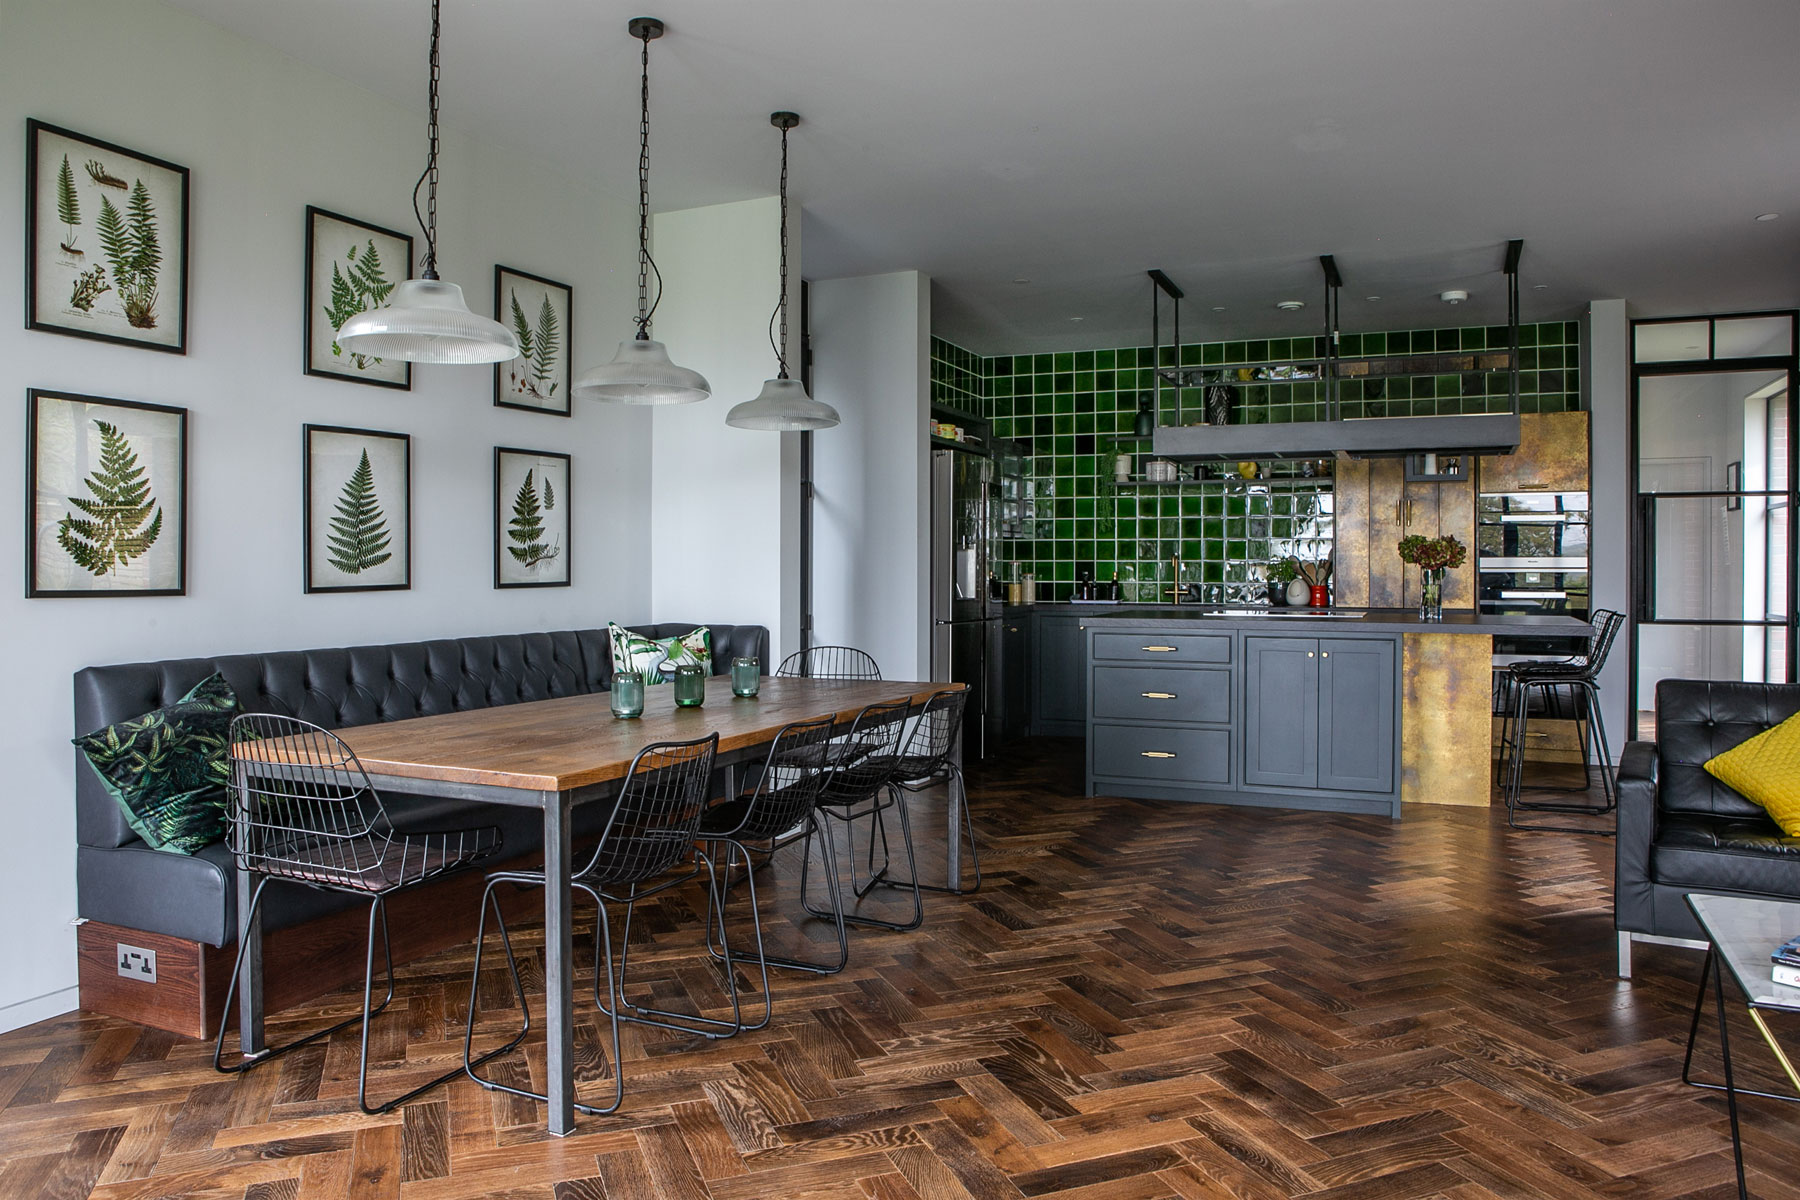 Open plan kitchen diner with parquet wood flooring